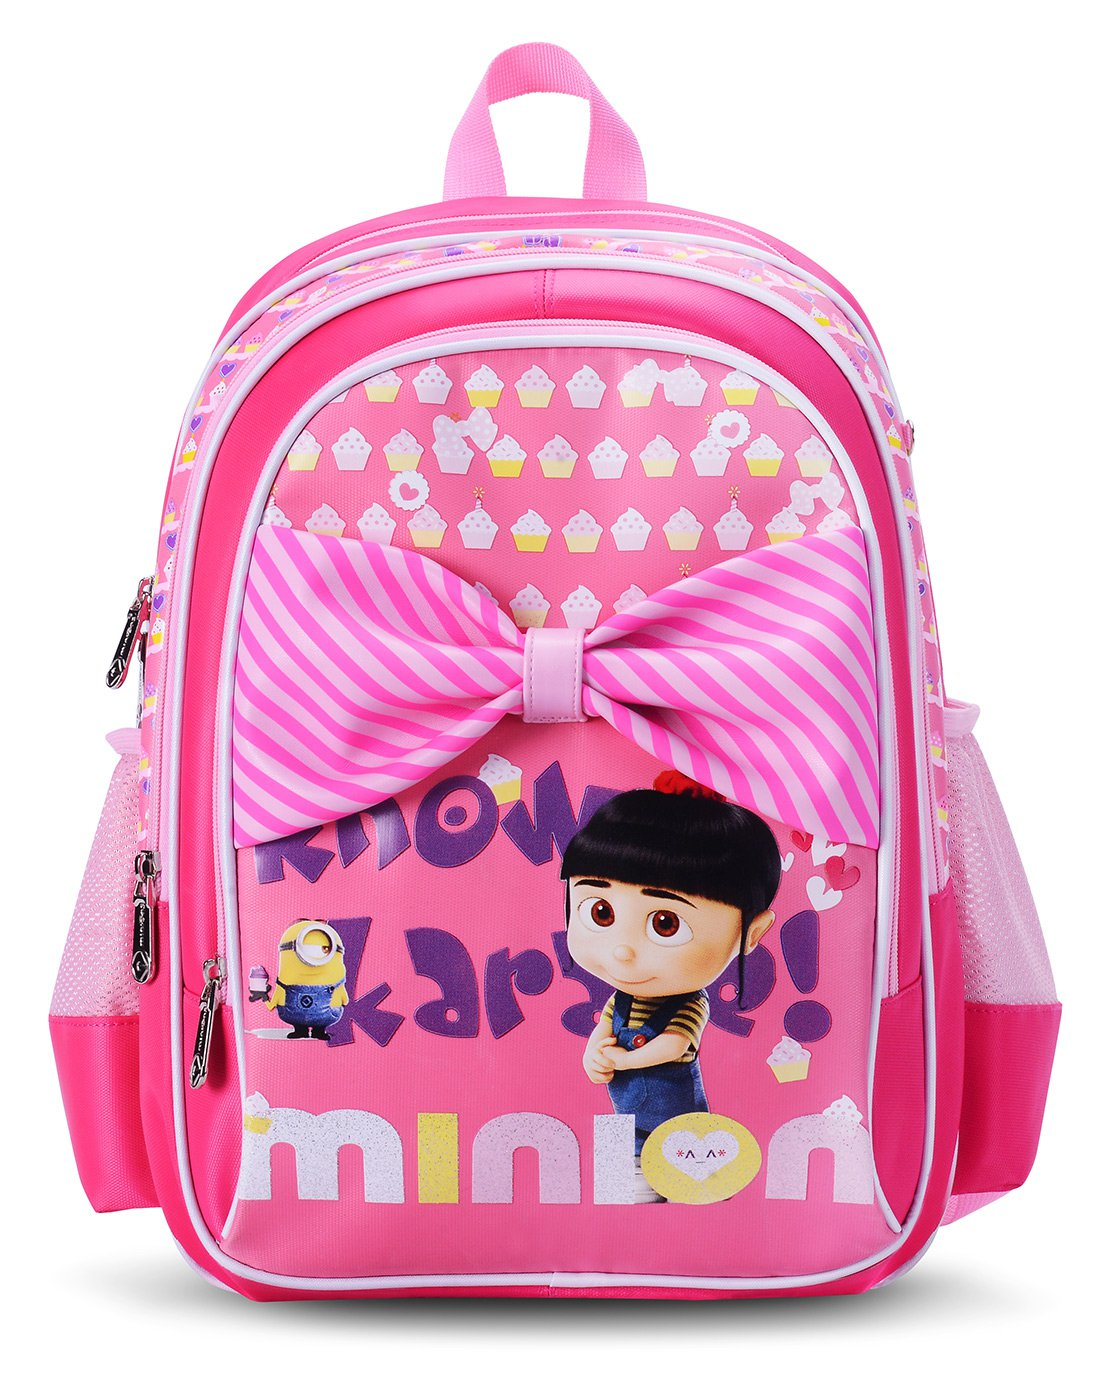 Minions butterfly school bag XHRNS008